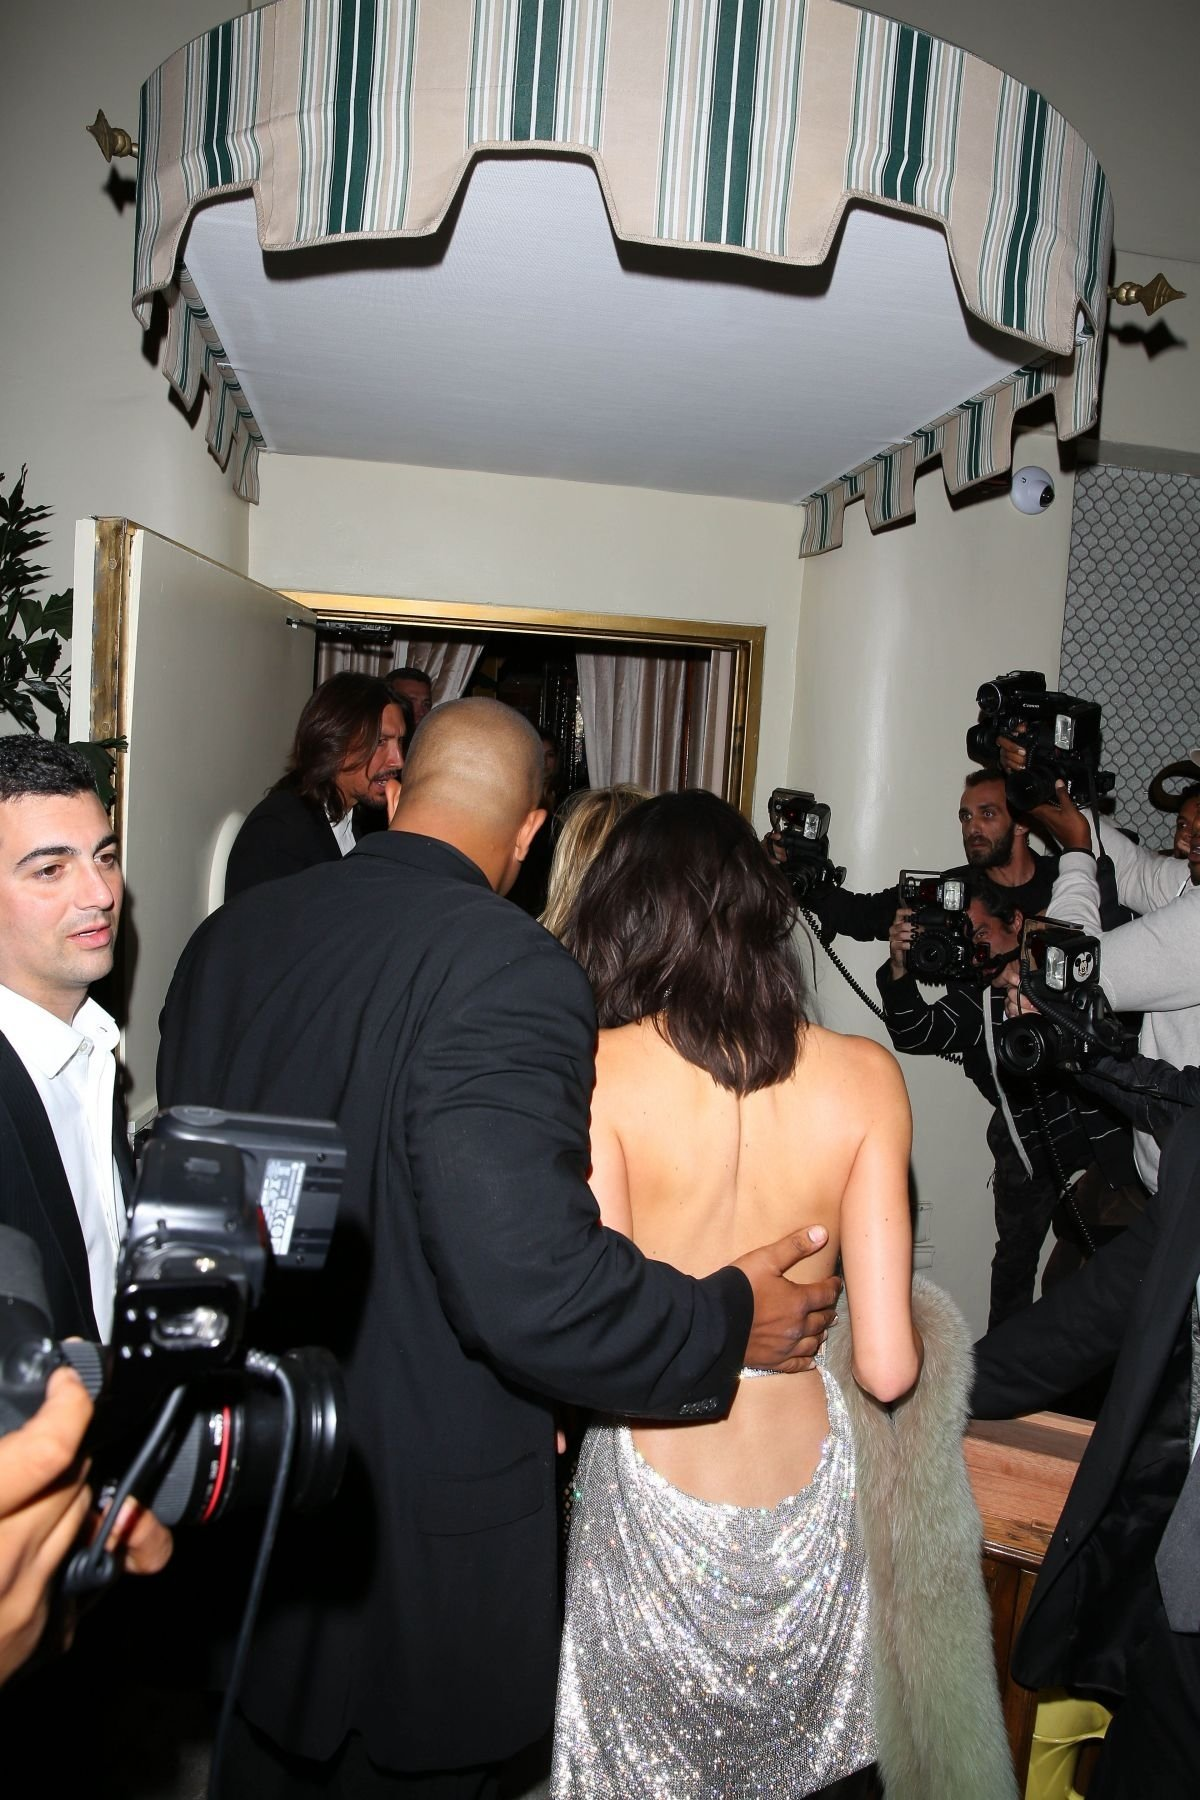 10 Most Recommended 21St Birthday Ideas Los Angeles kendall jenner arrives at her 21st birthday party in los angeles 11 1 2020